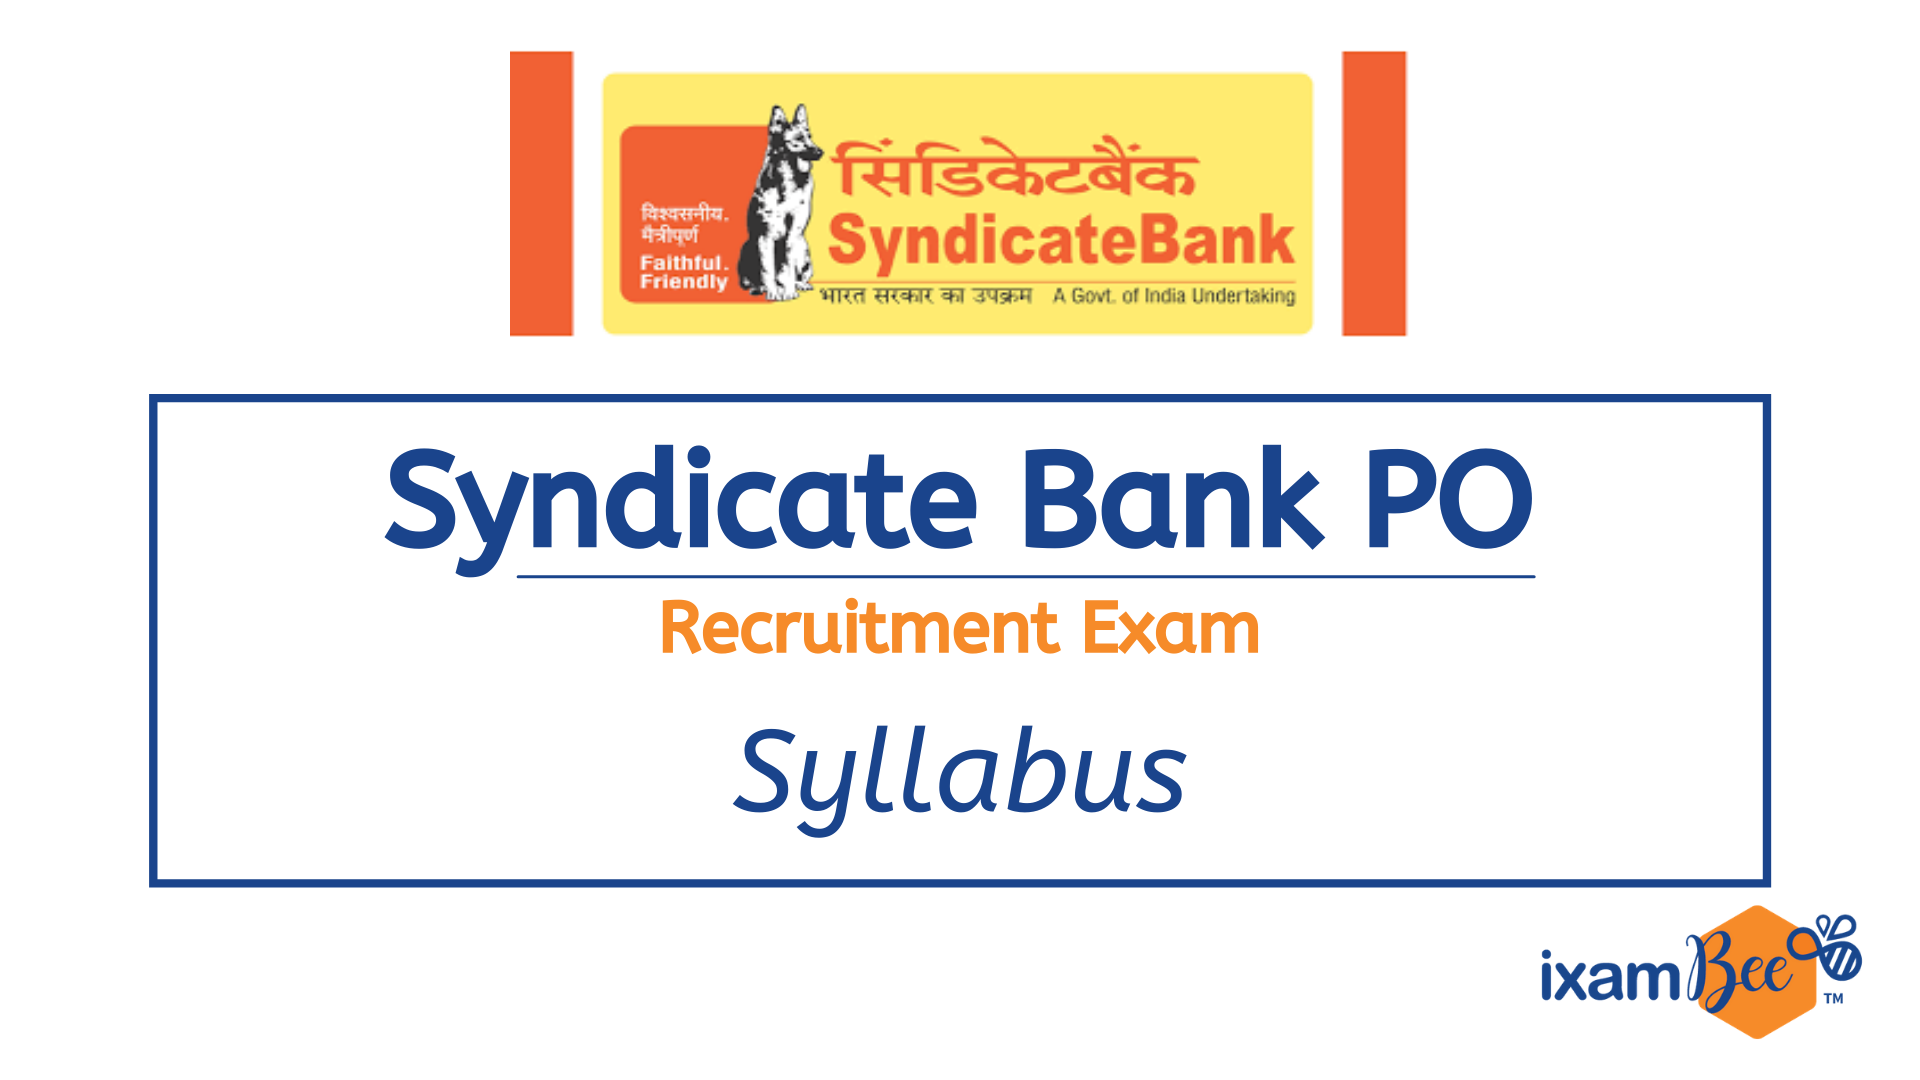 Syndicate Bank PO Recruitment Exam Syllabus